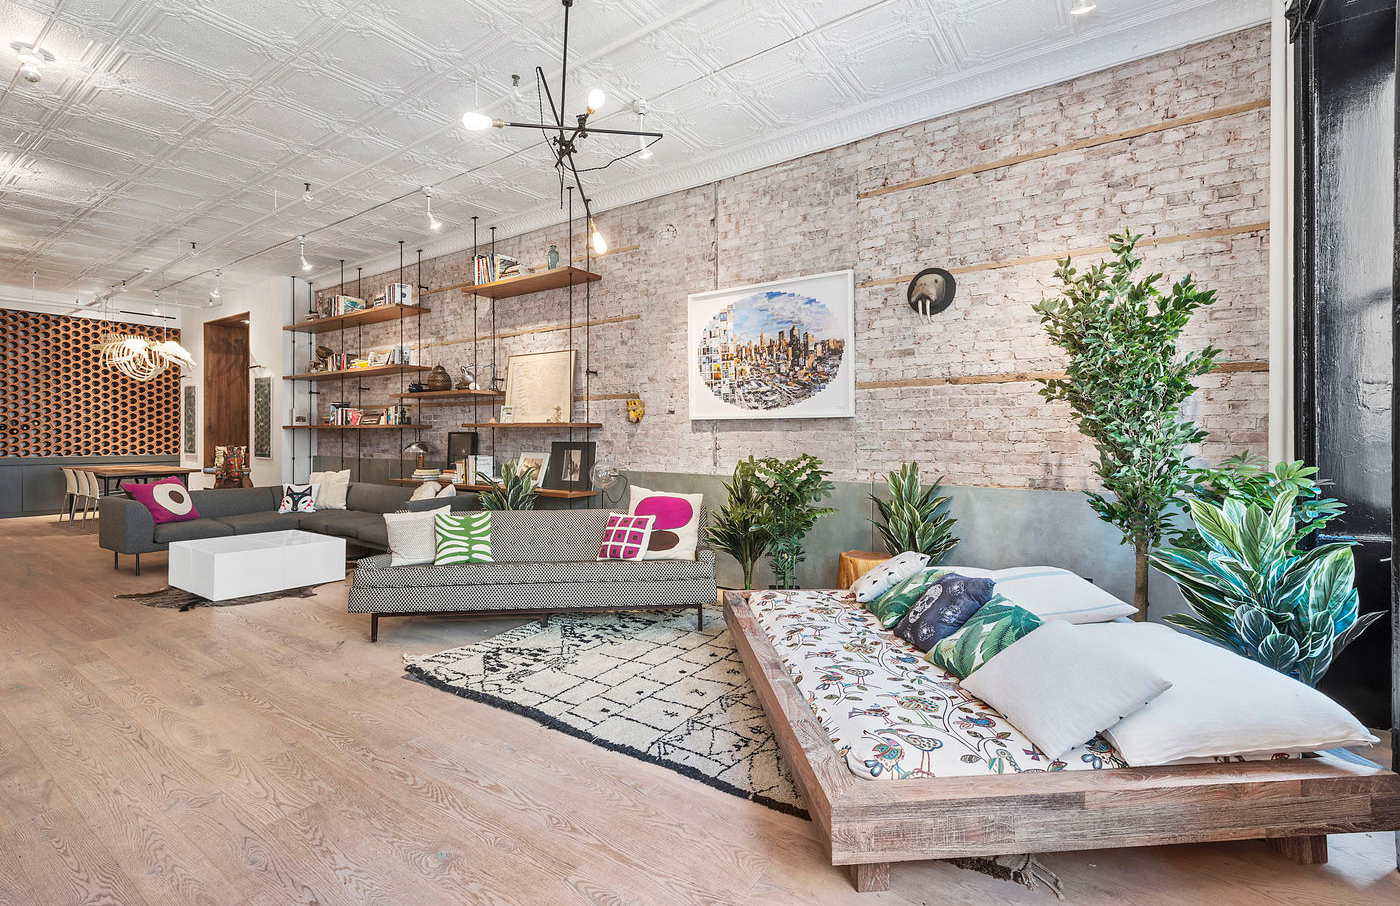 Lowline founder james ramsey s manhattan loft goes on sale for Loft in manhattan for sale